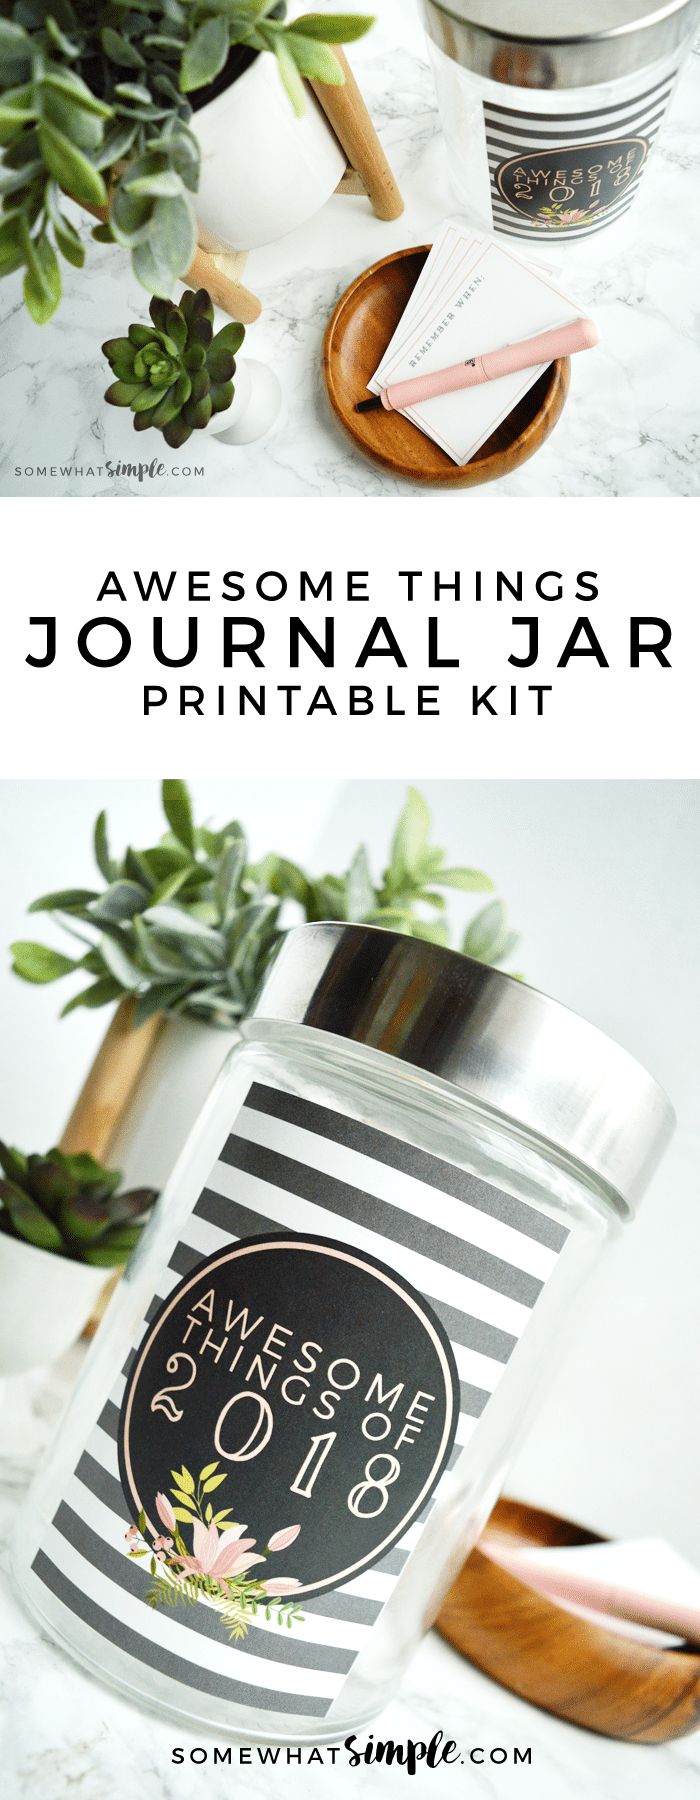 Hang on to your hats, we've put together our 2017 Journal Jar Kit with a label + journaling cards! (And they turned out darling!)